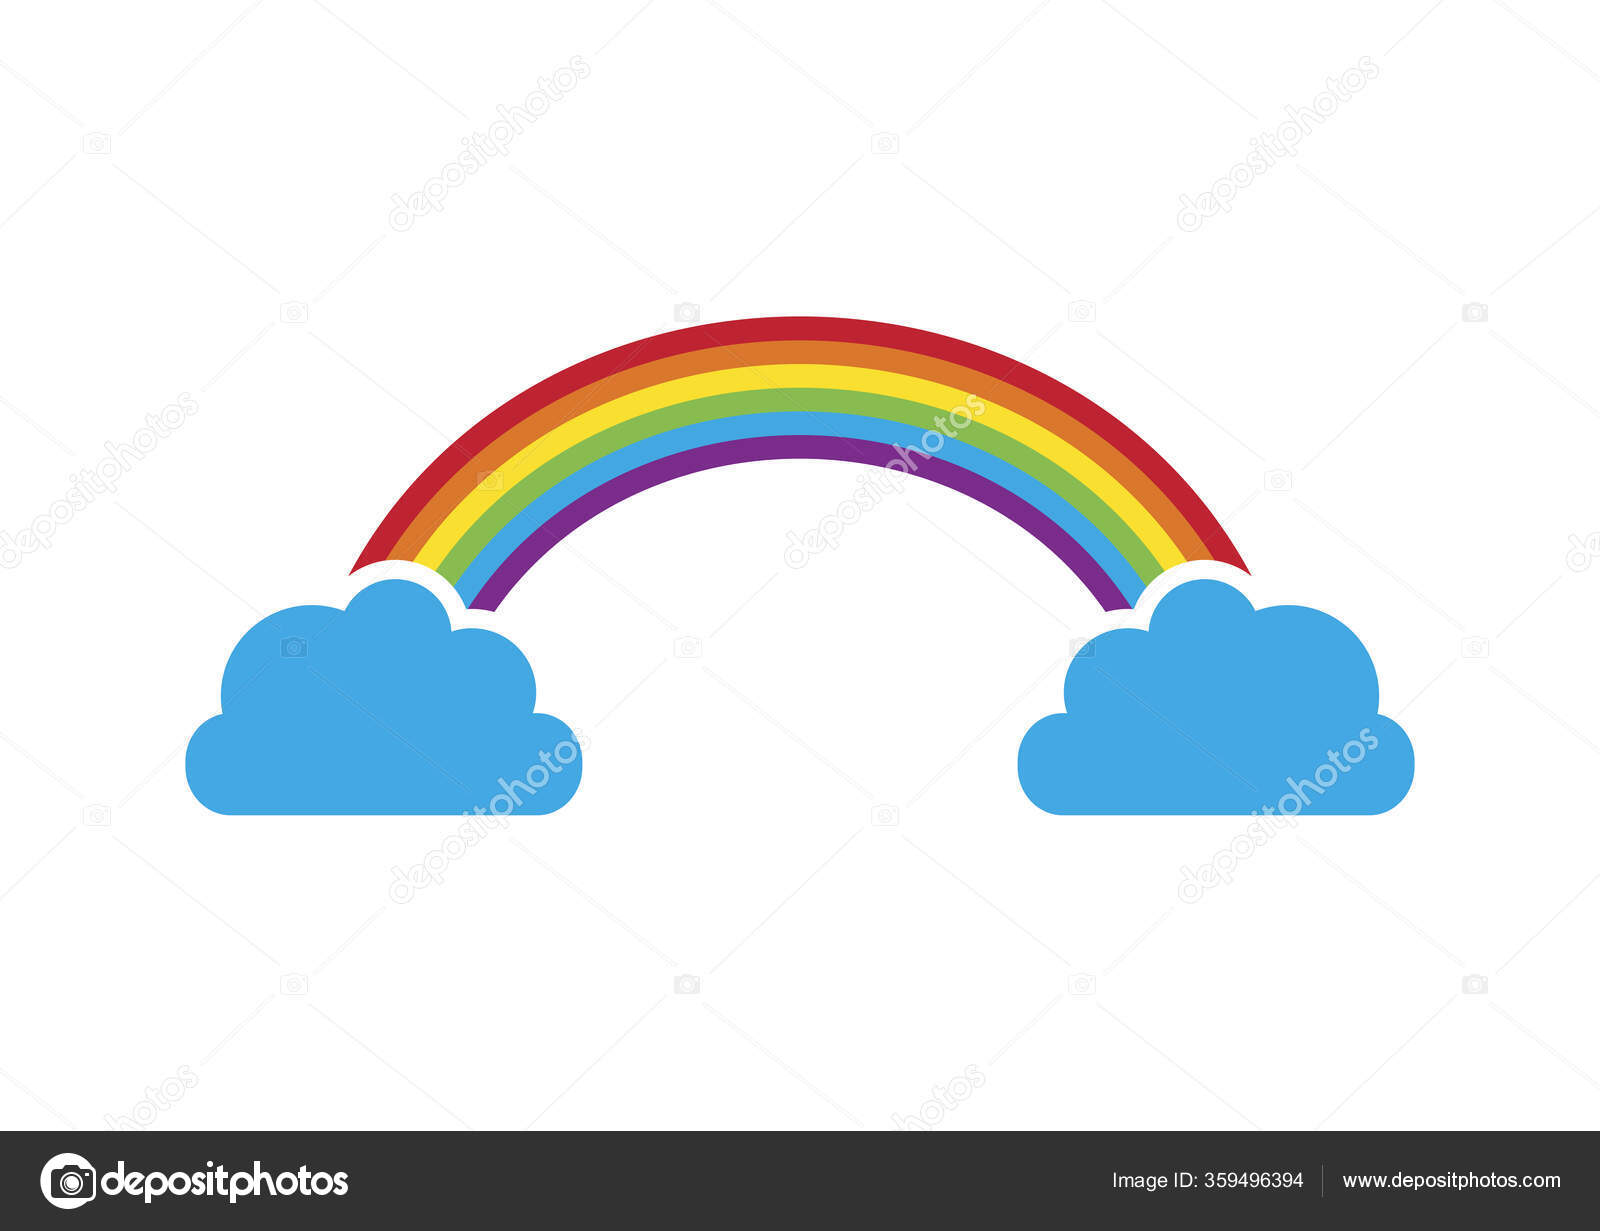 Rainbow Clouds Vector Rainbow Graphic Icon Colorful Rainbow Vector Beautiful Stock Vector Betka82 359496394